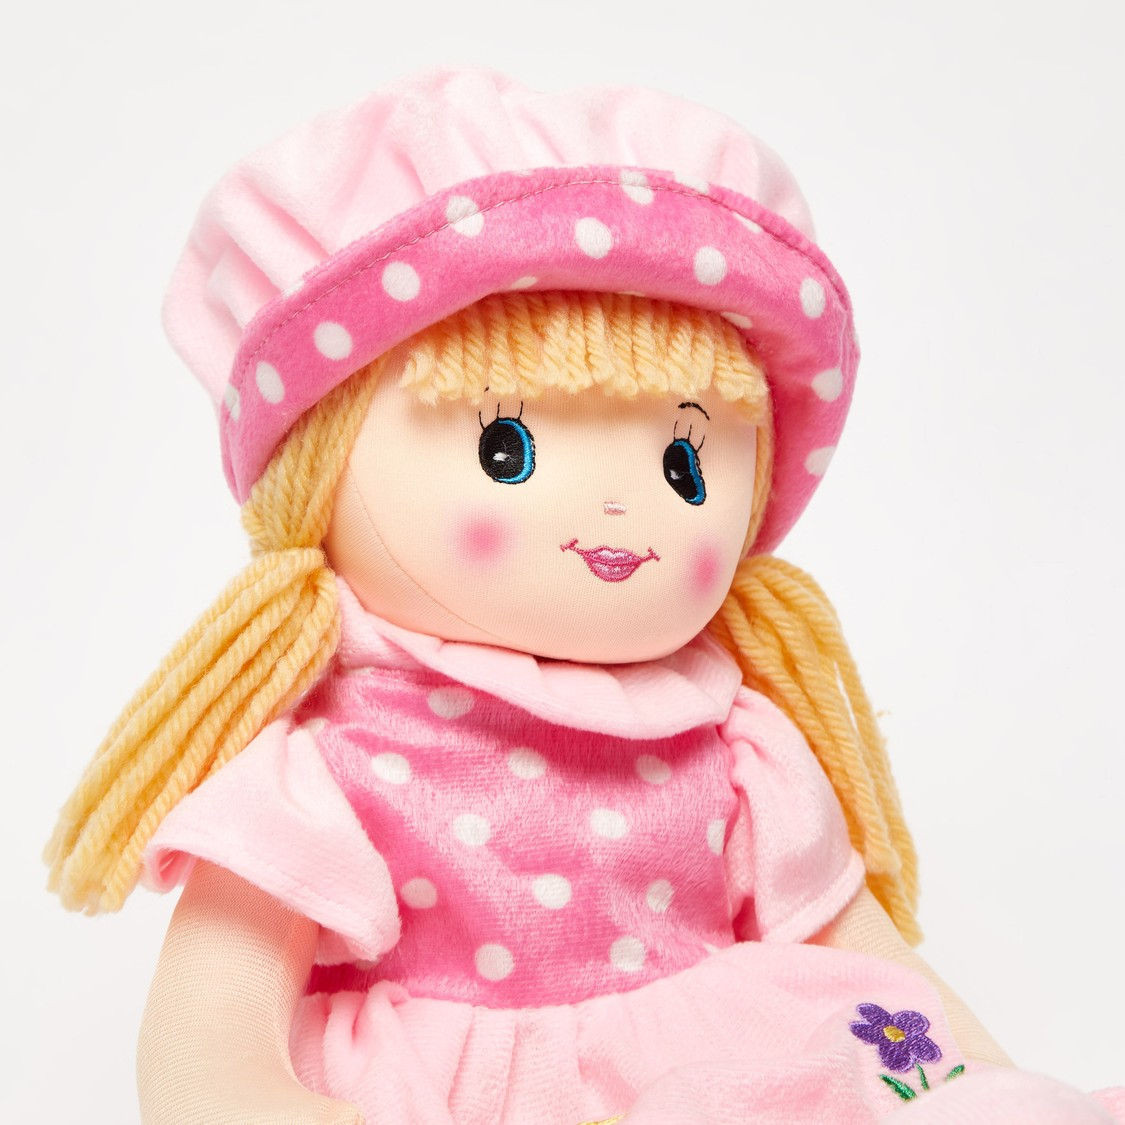 Rag Doll in Textured Dress